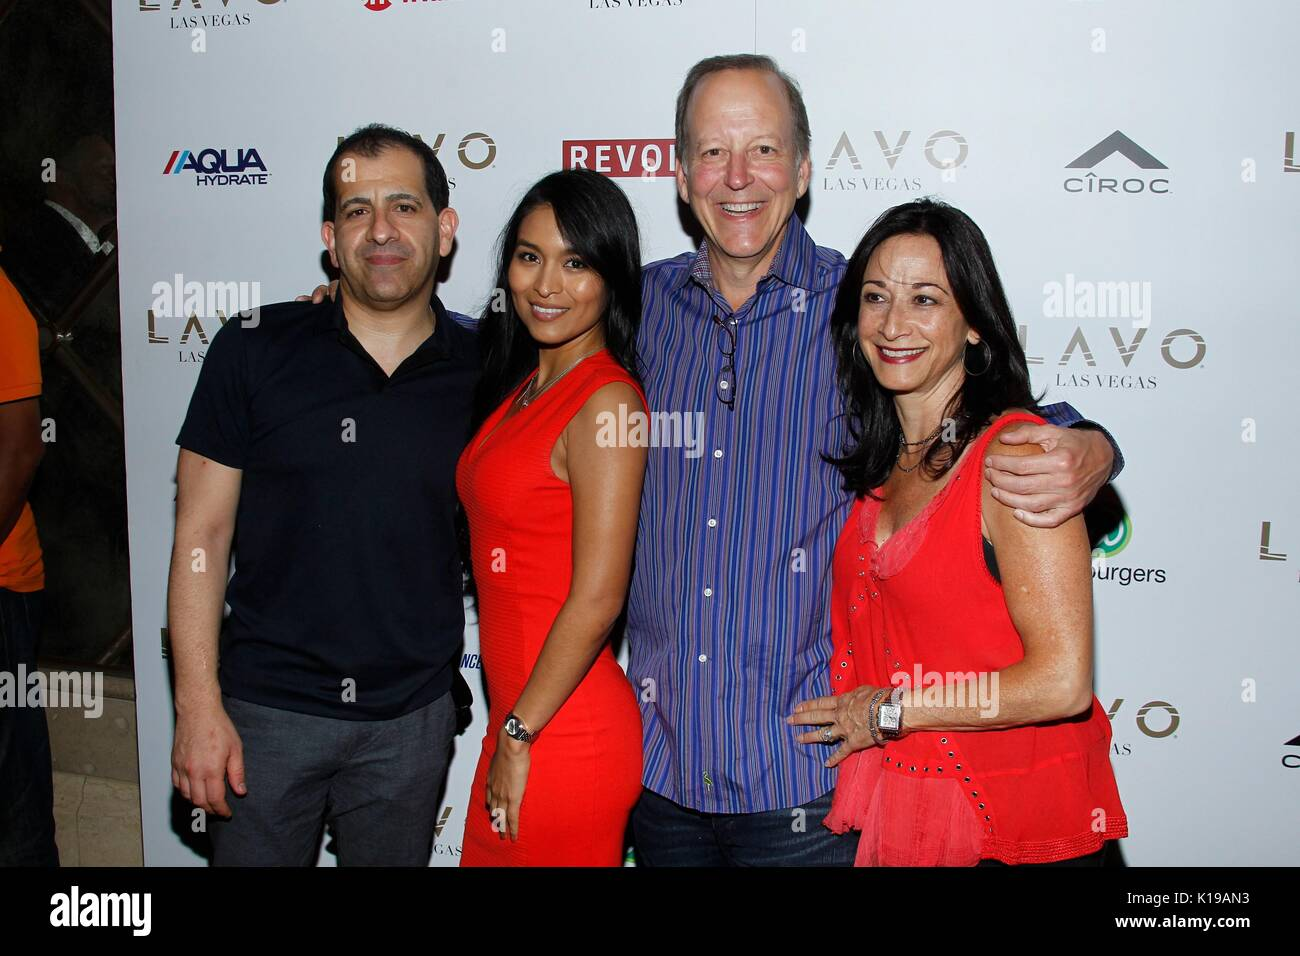 Las Vegas, NV, USA. 25th Aug, 2017. Stephen Espinoza, Jeannena Flores, Jim Gray, Fran Gray at arrivals for Double - Stock Image